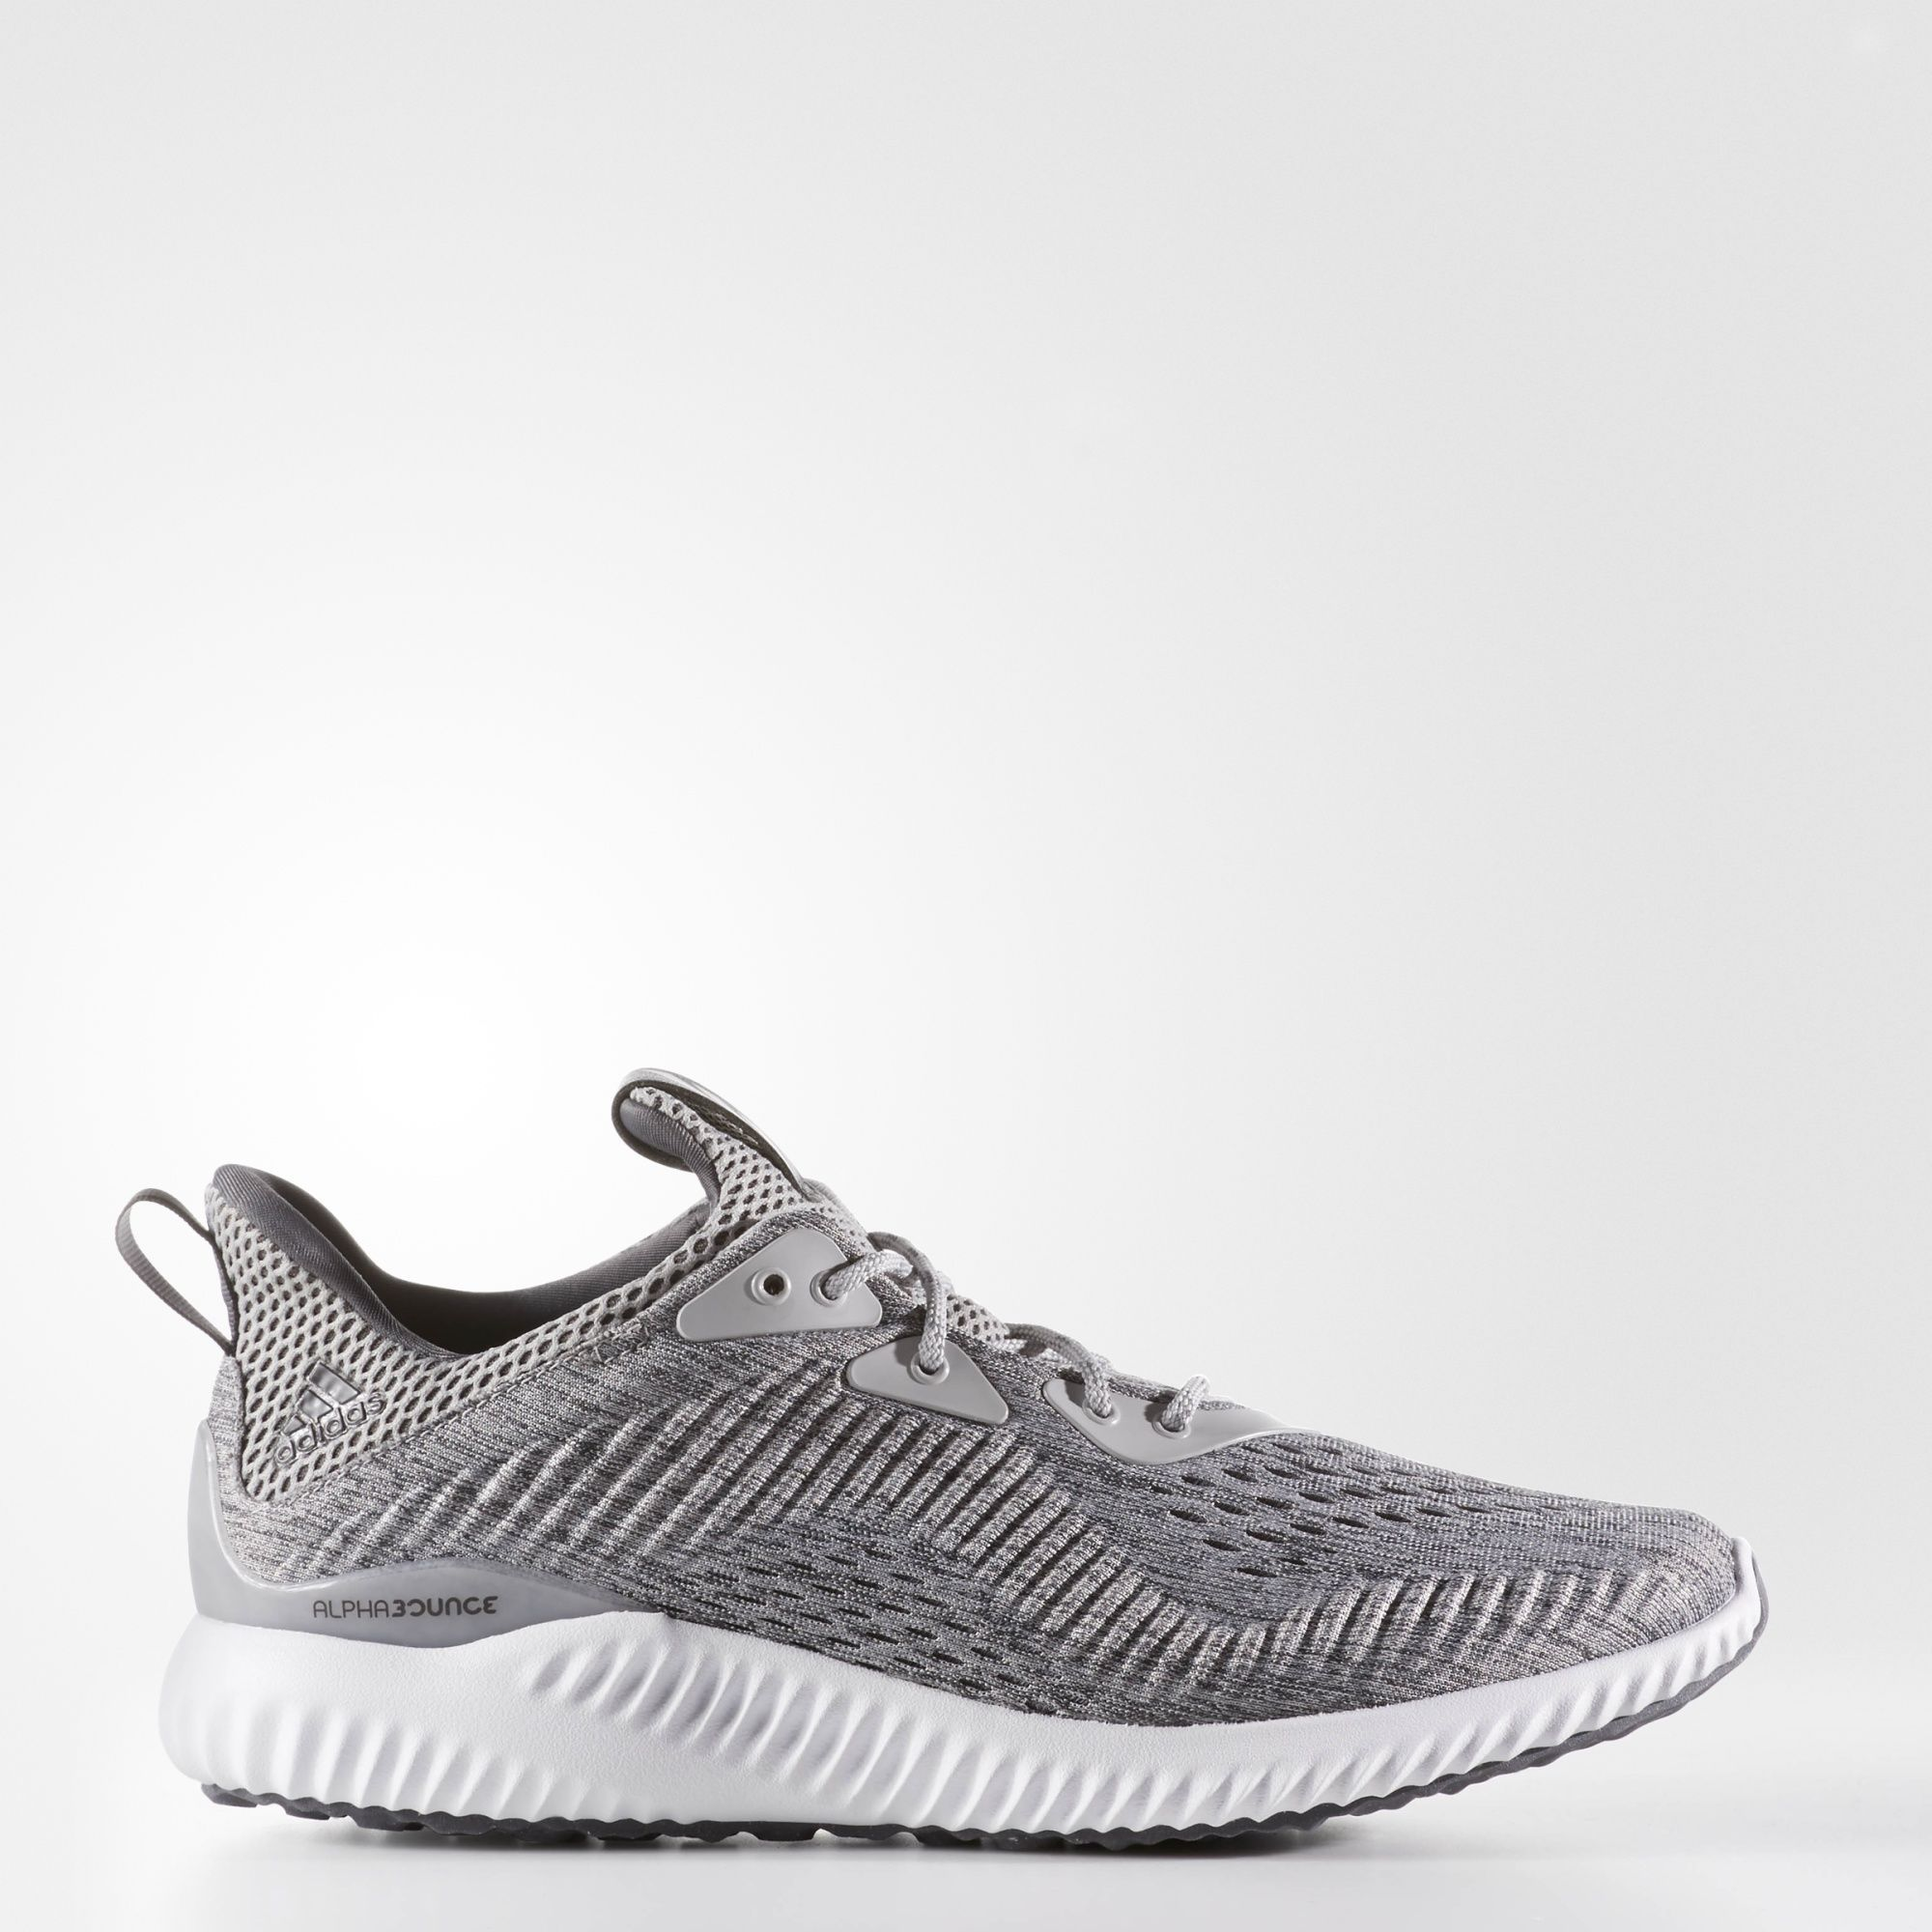 Adidas Alphabounce Em Shoes Running Shoes For Men Mesh Shoes